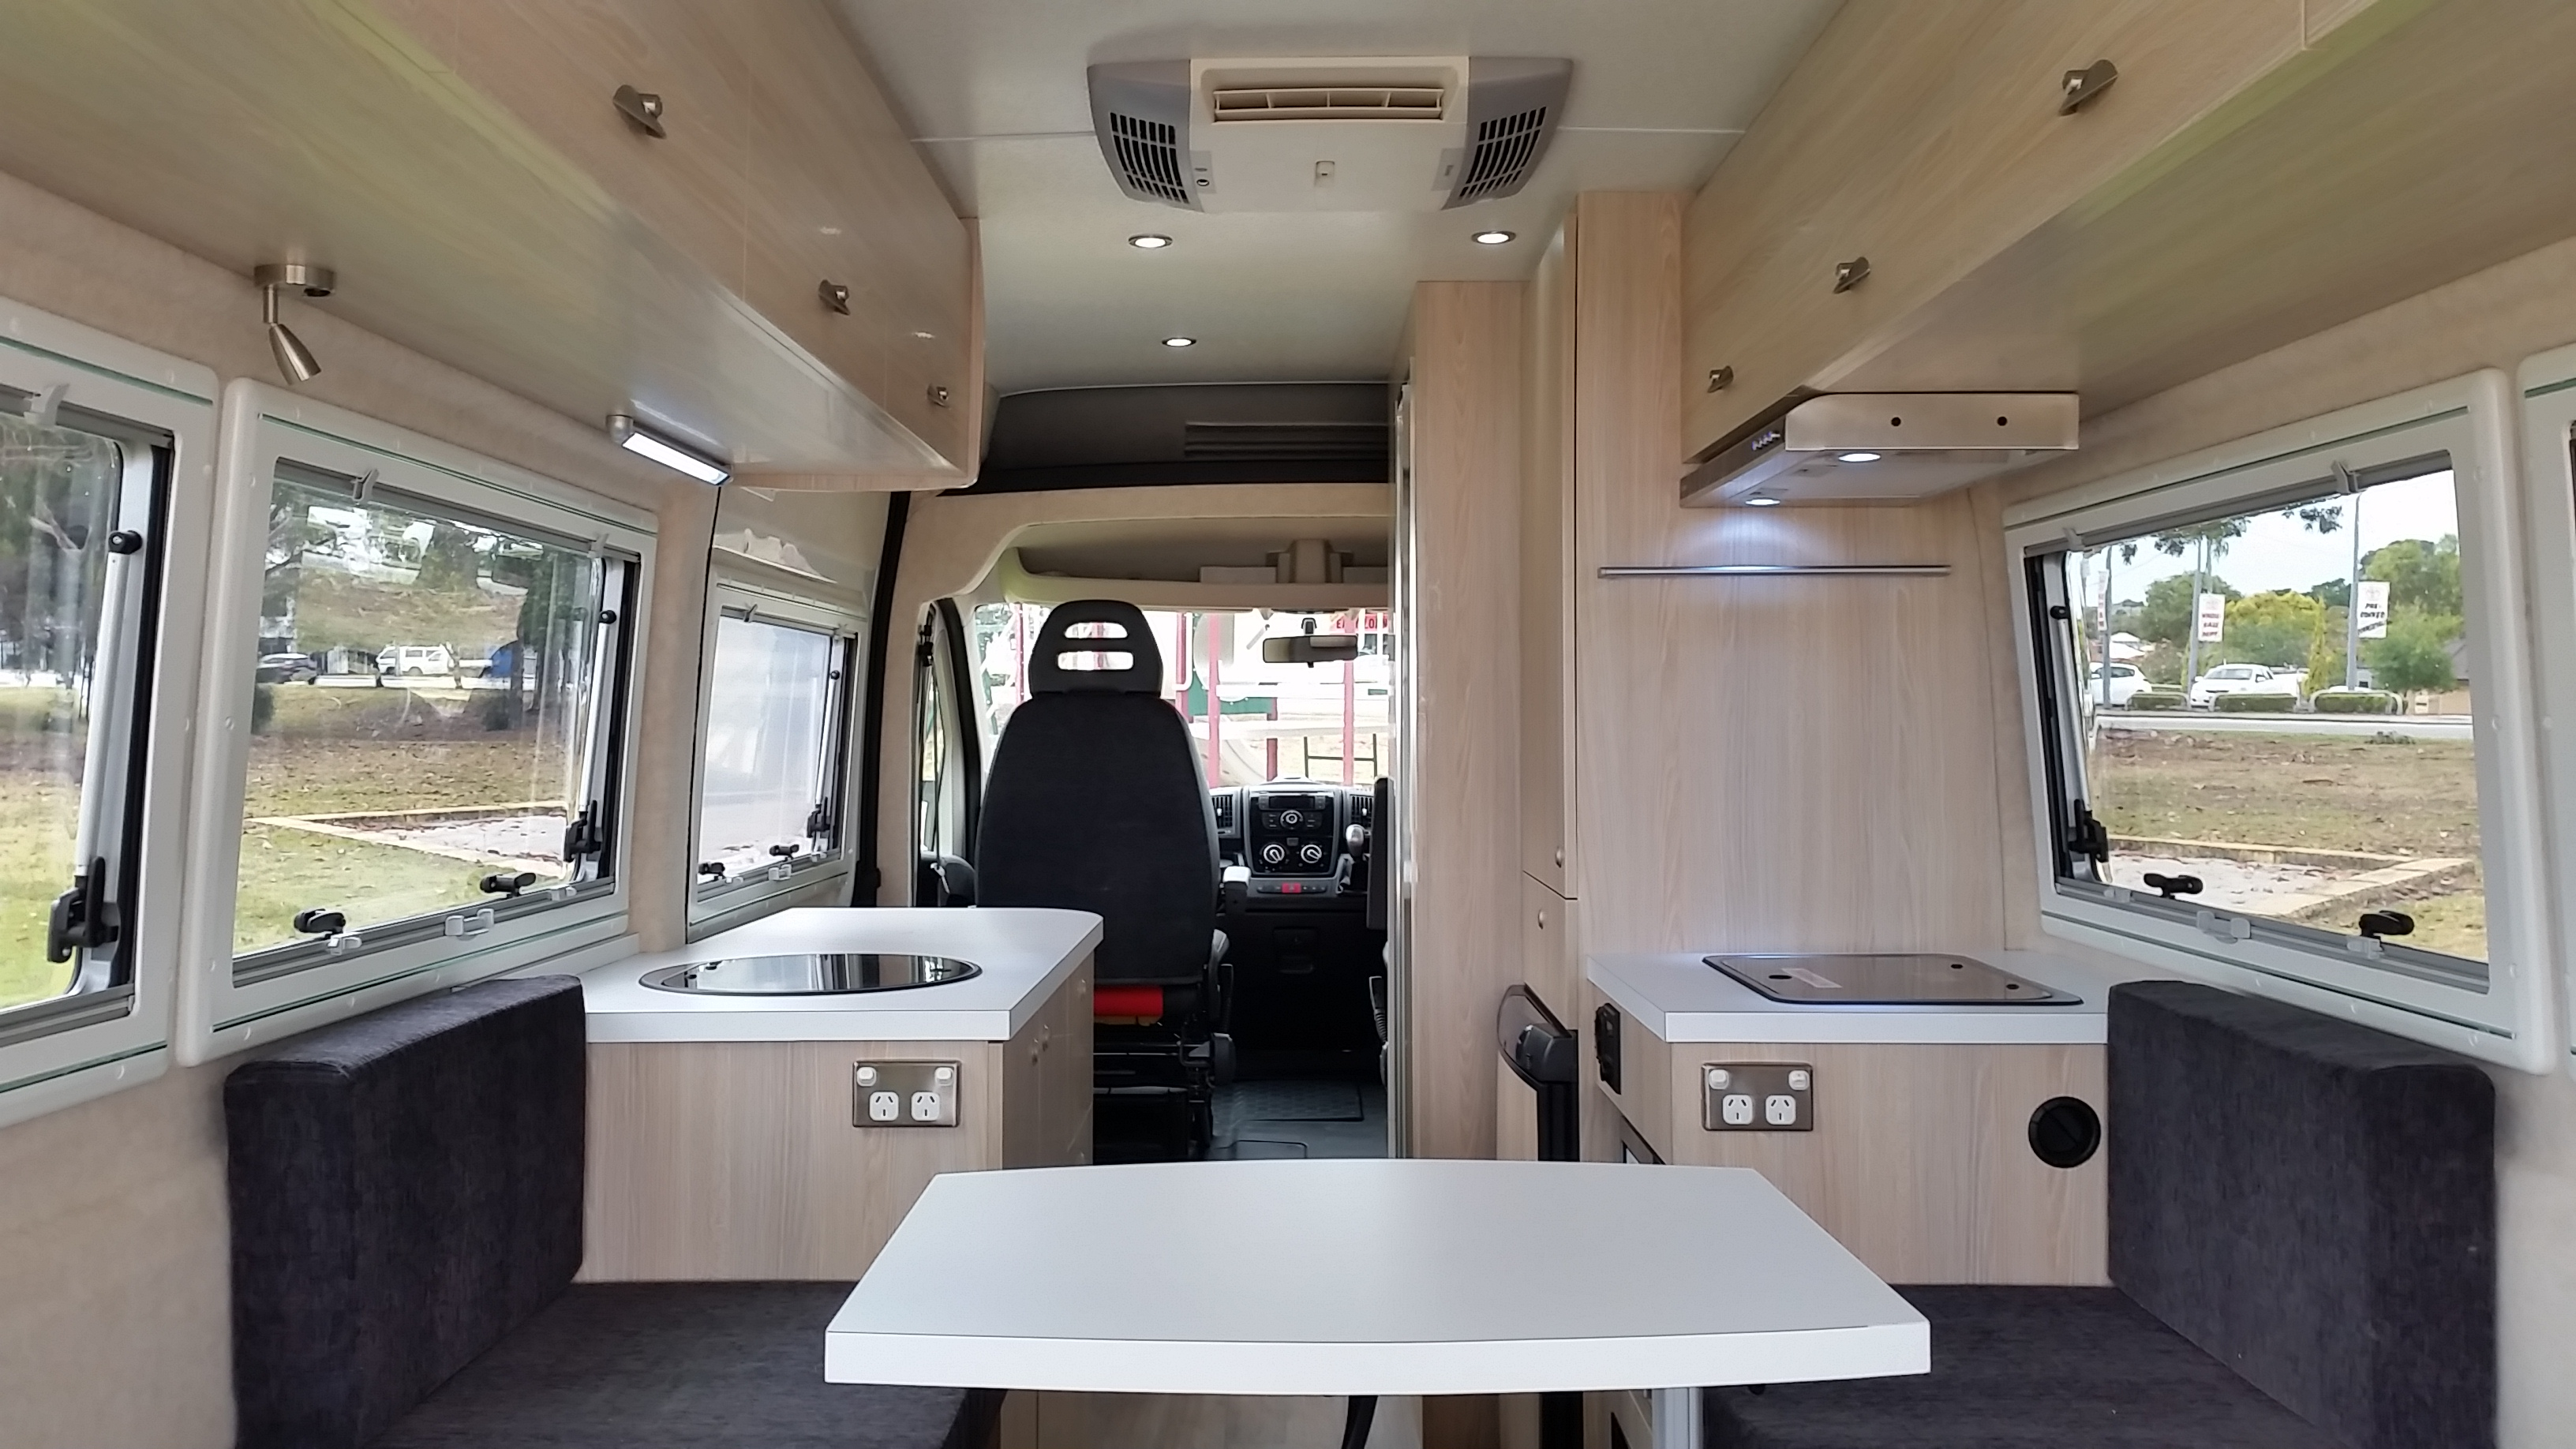 Diy Van Conversions >> Campervan Conversions Perth| Motorhome Conversions Perth